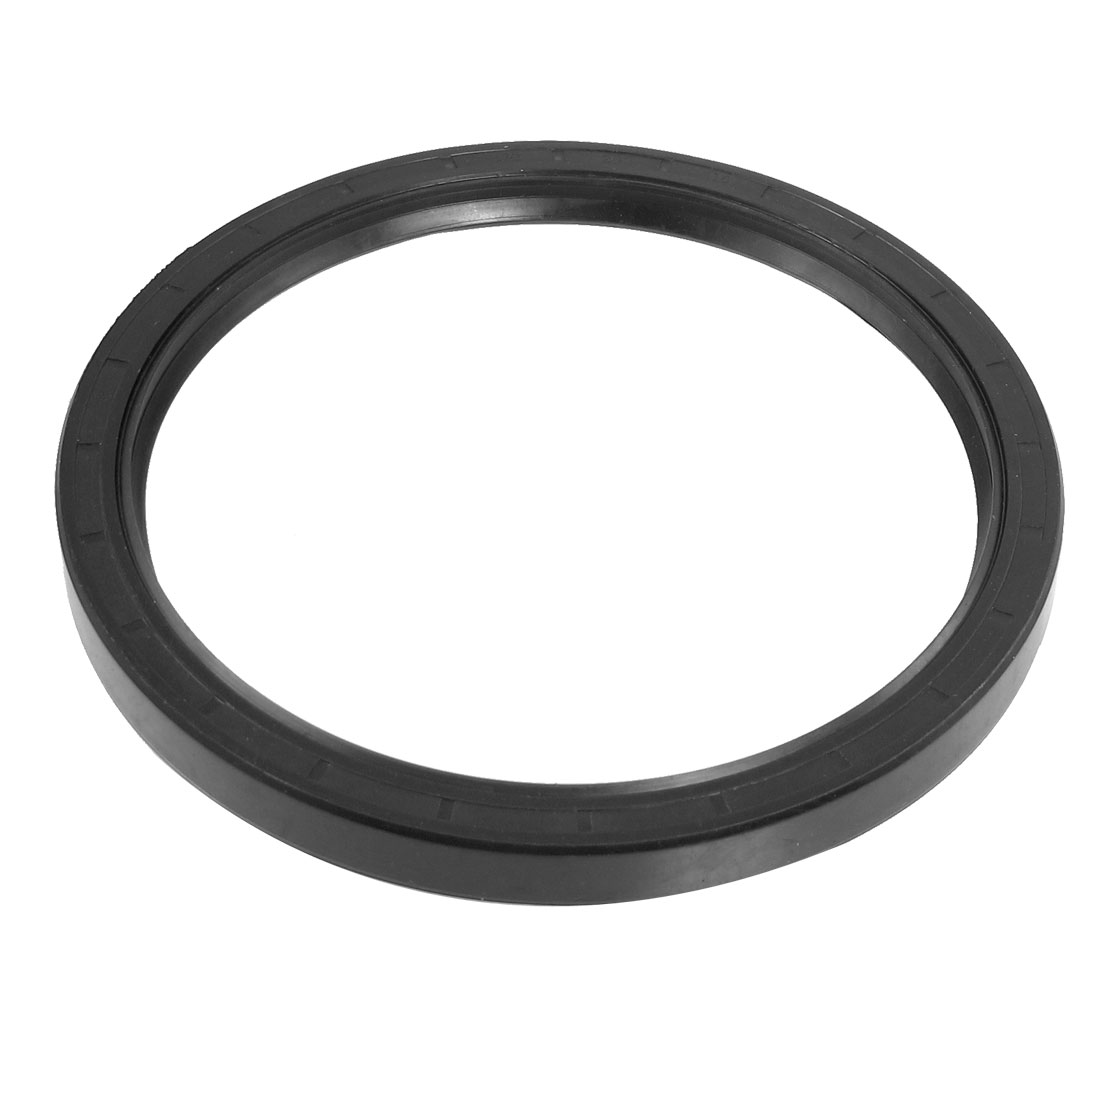 Steel Spring NBR Double Lip TC Oil Seal Black 170mm x 200mm x 16mm